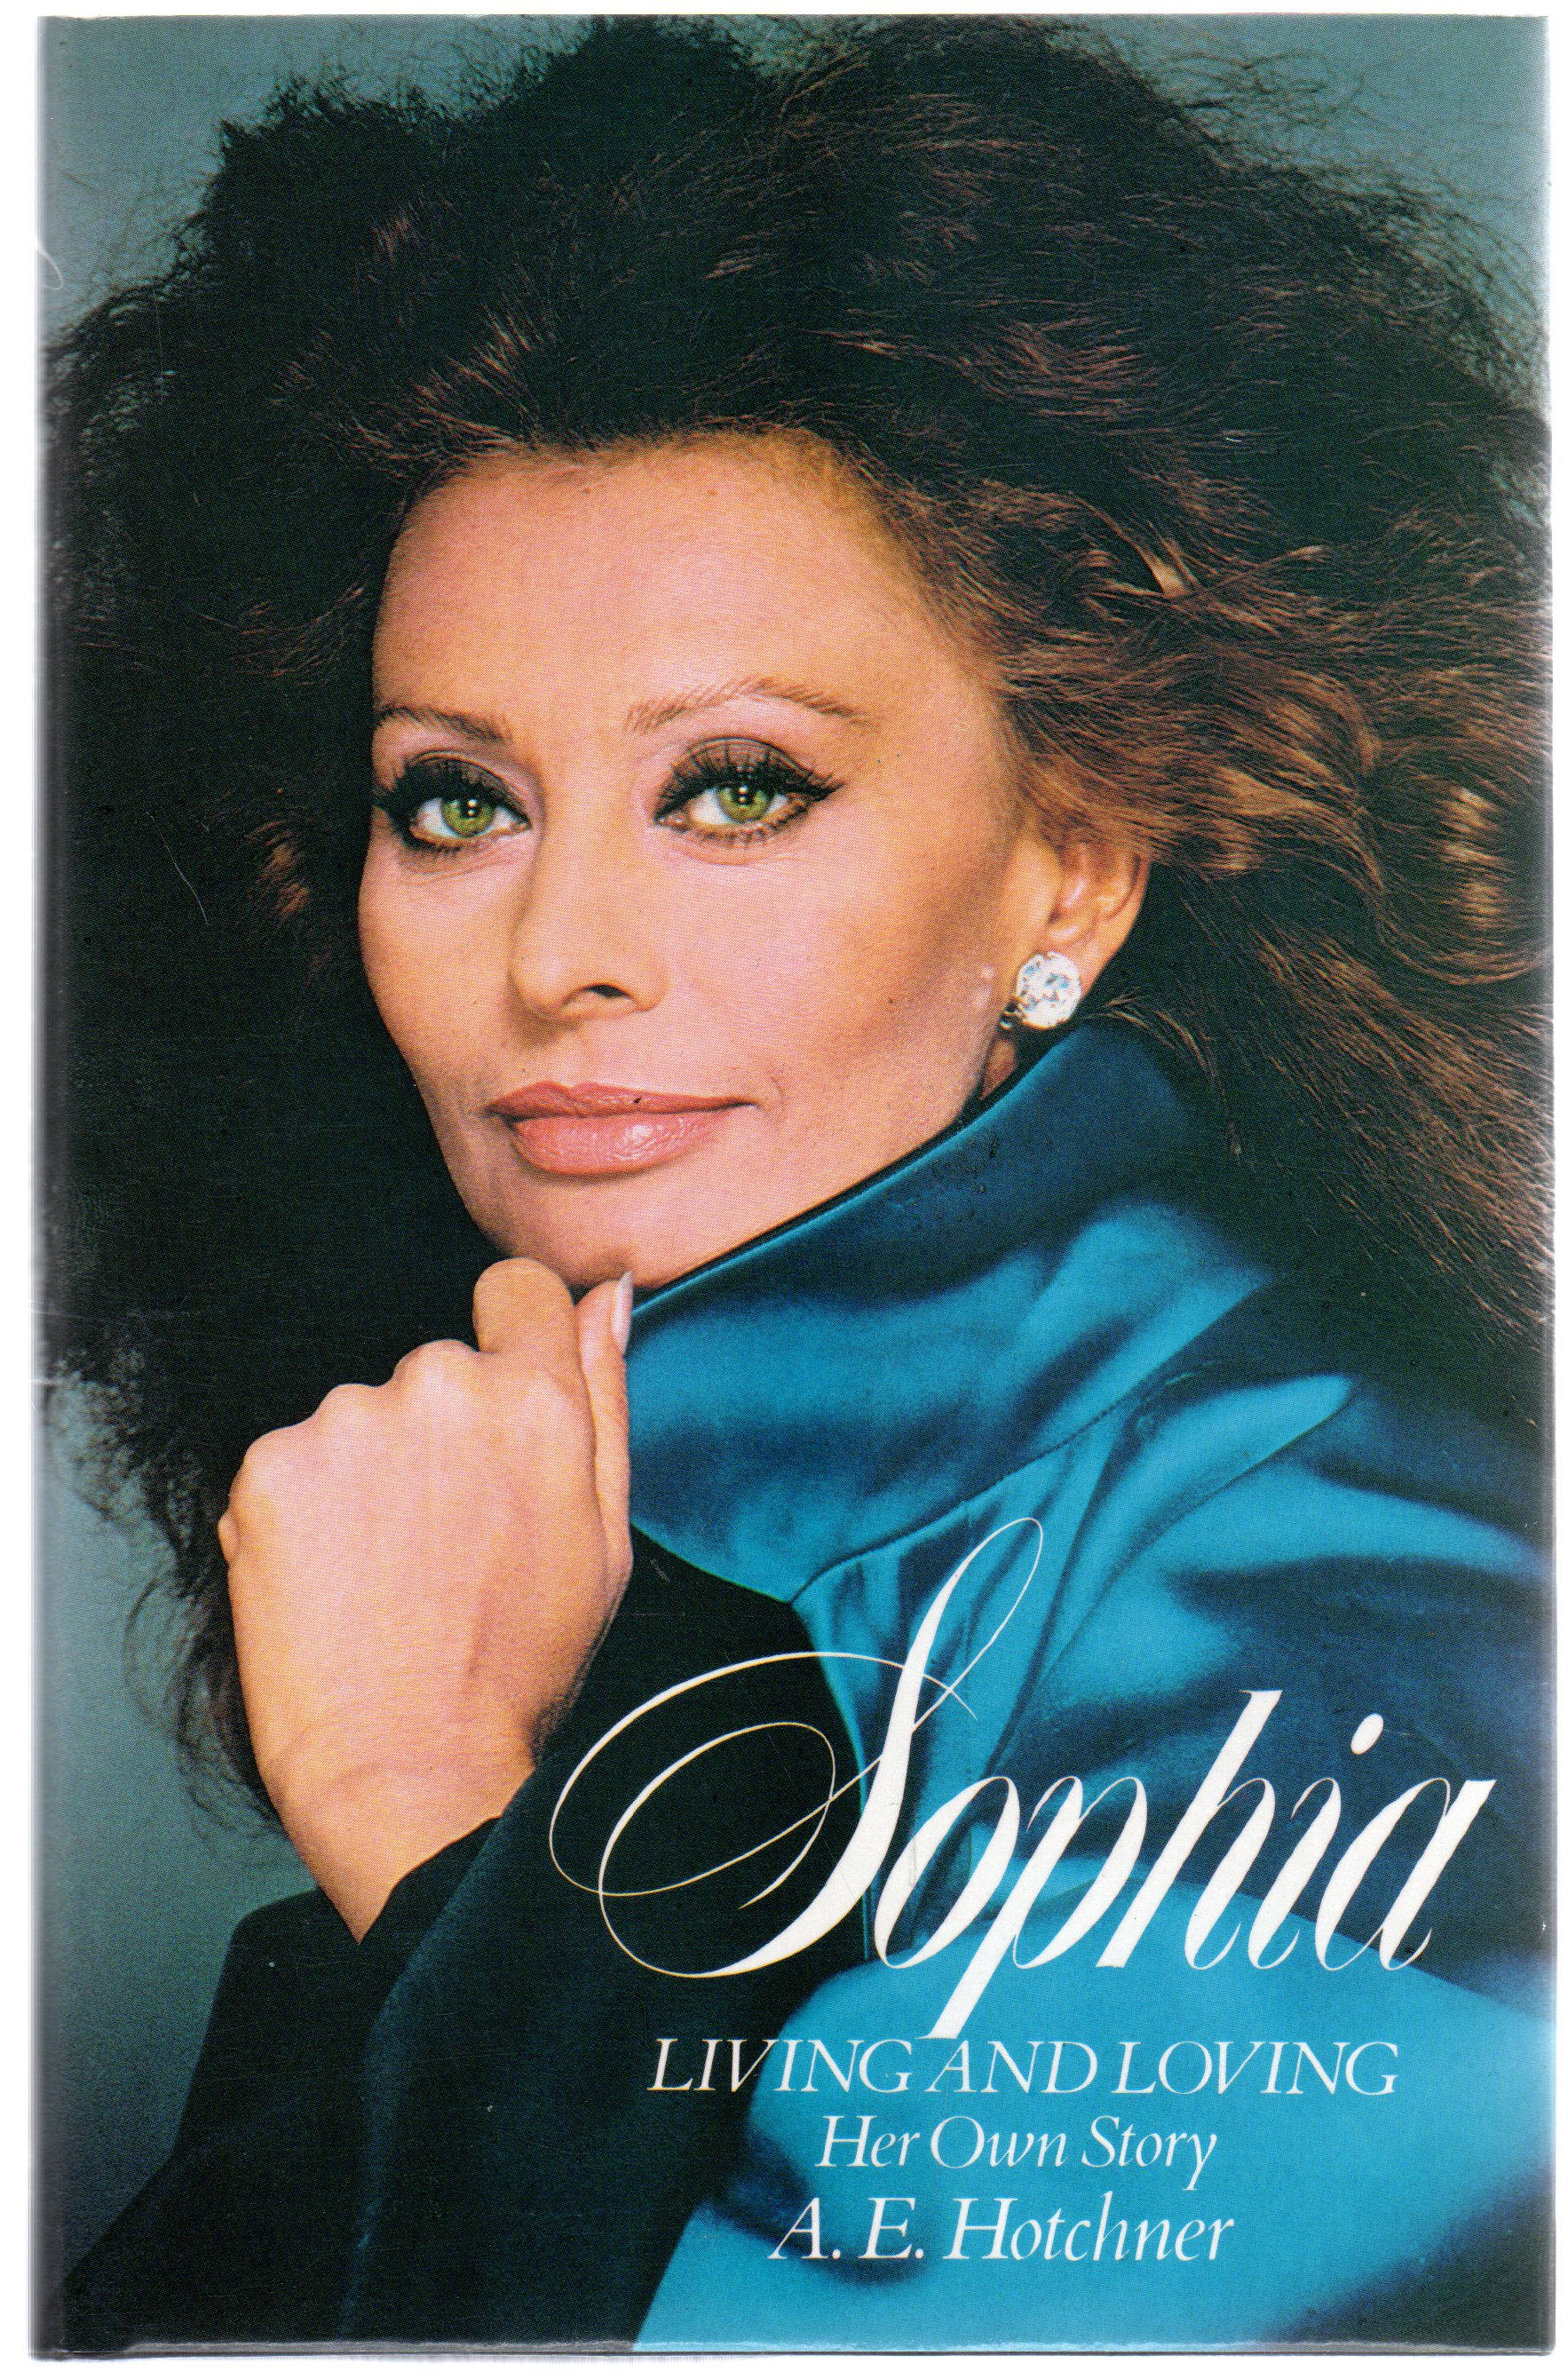 Image for Sophia: Living and Loving - SIGNED COPY